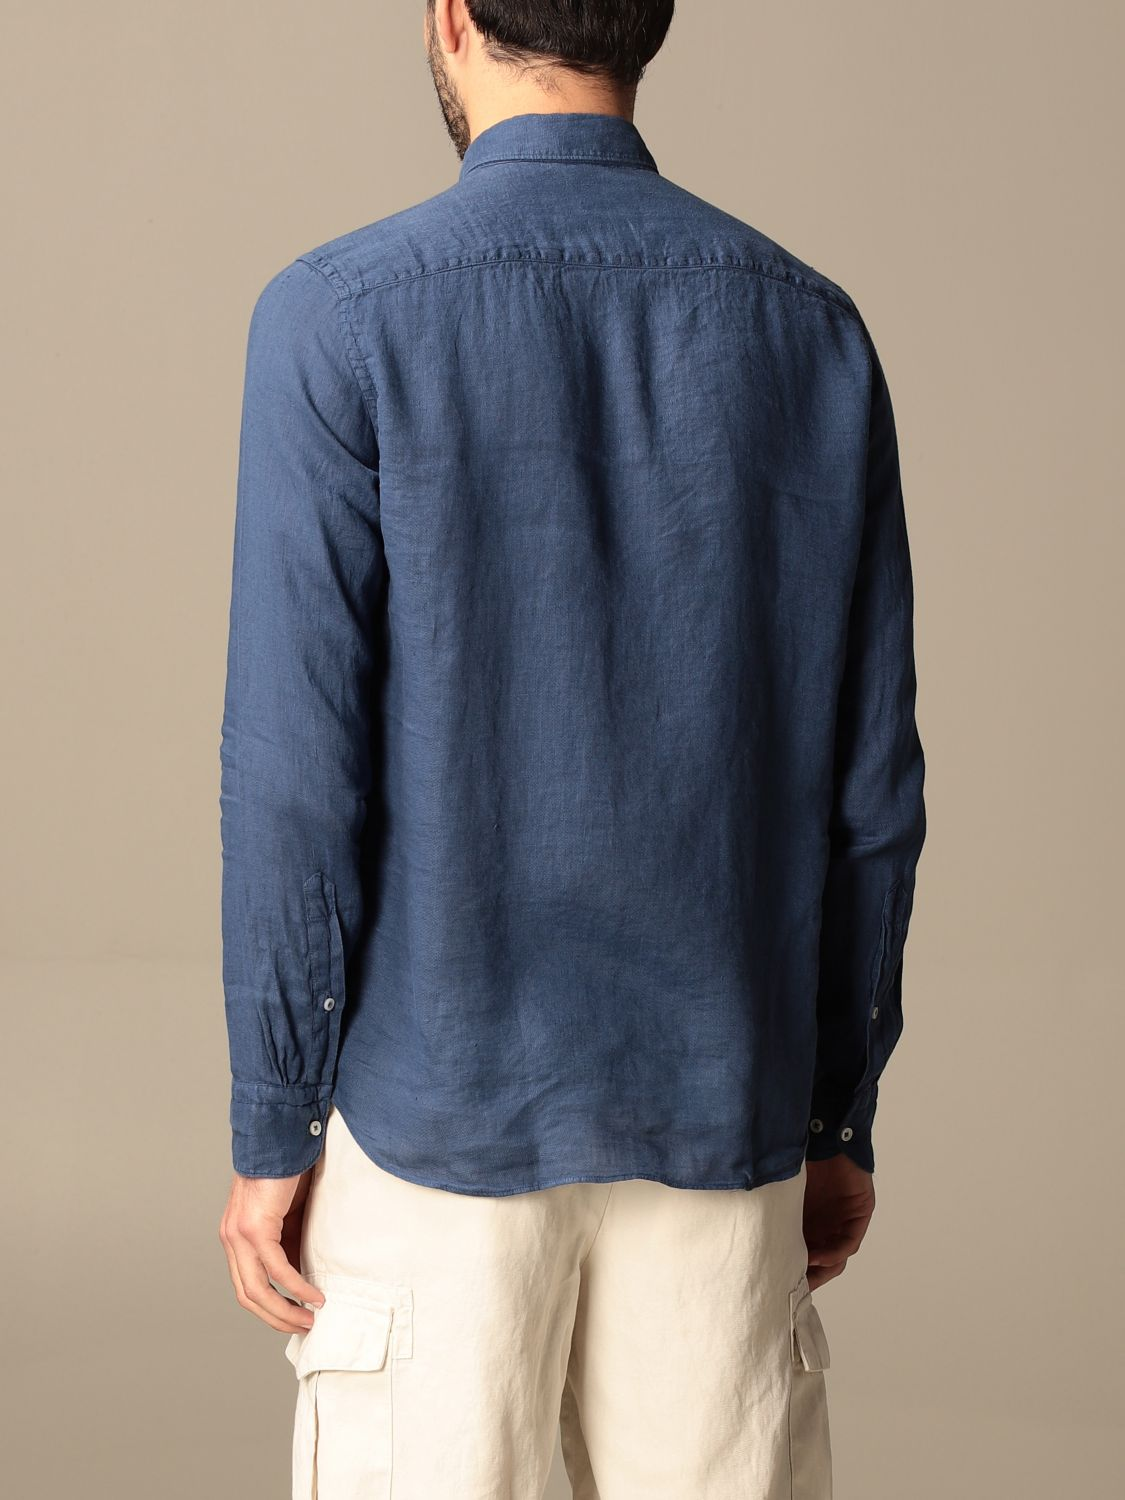 Chemise An American Tradition: Chemise homme Bd Baggies bleu marine 2